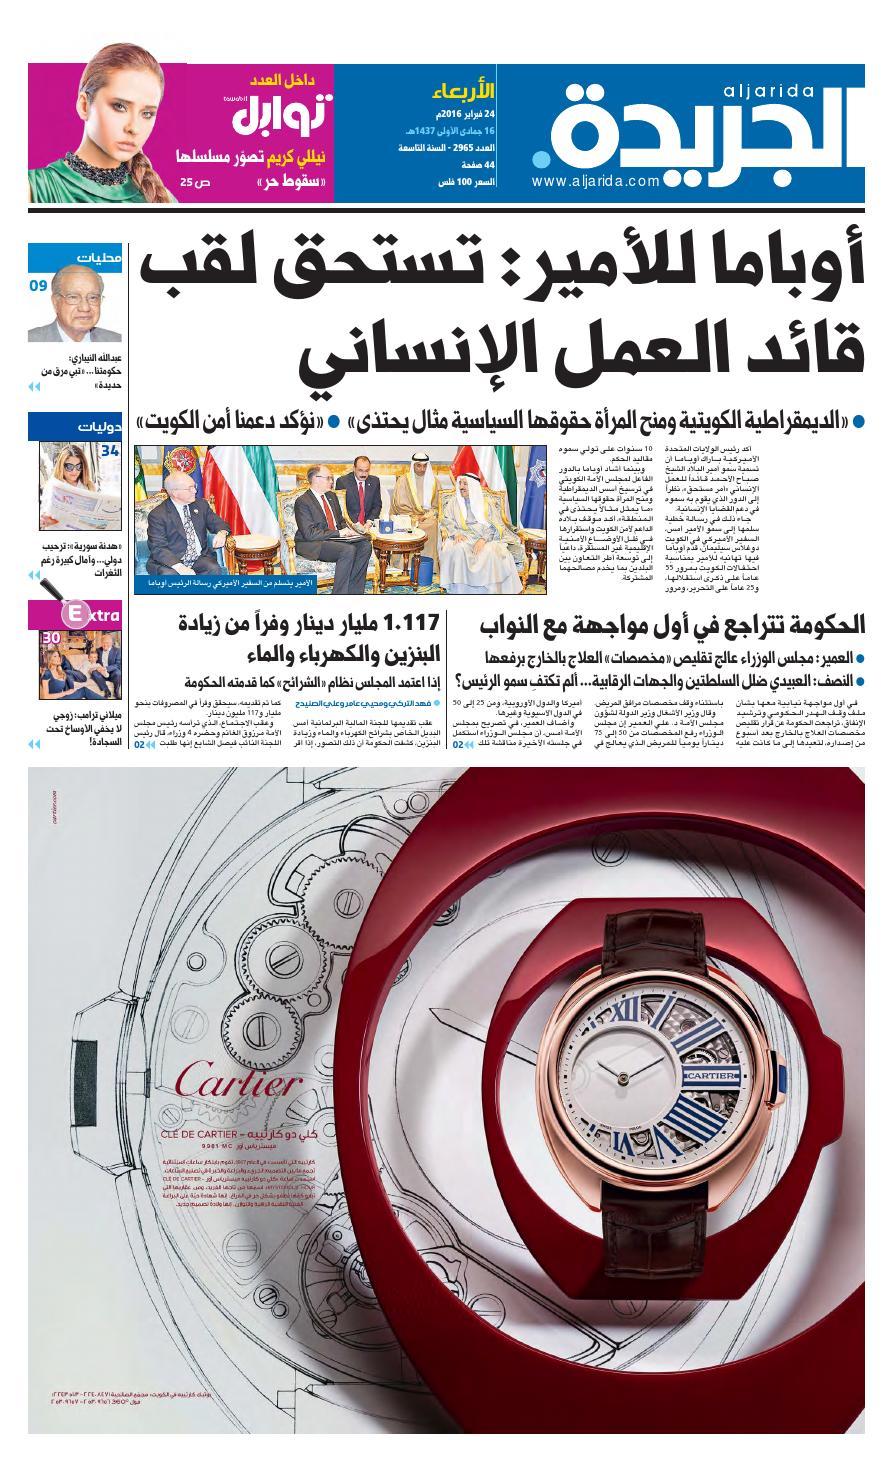 c71991d8179fb عدد الجريدة 24 فبراير 2016 by Aljarida Newspaper - issuu